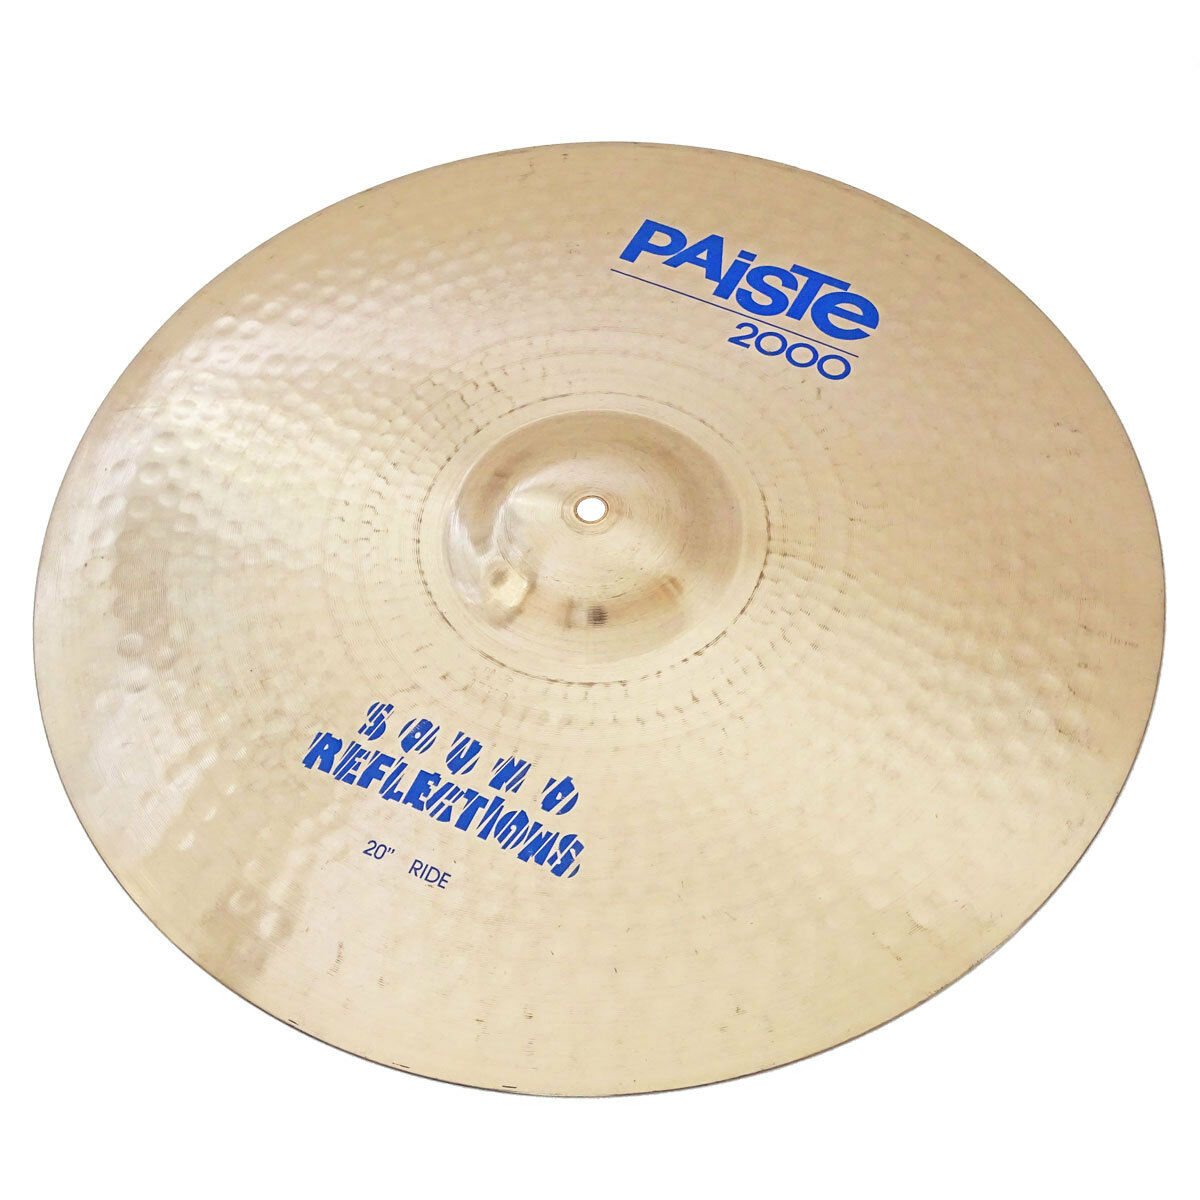 PAISTE 2000 Sound Reflections RIDE BECKEN 20  Ø 51 cm warmer, heller Klang